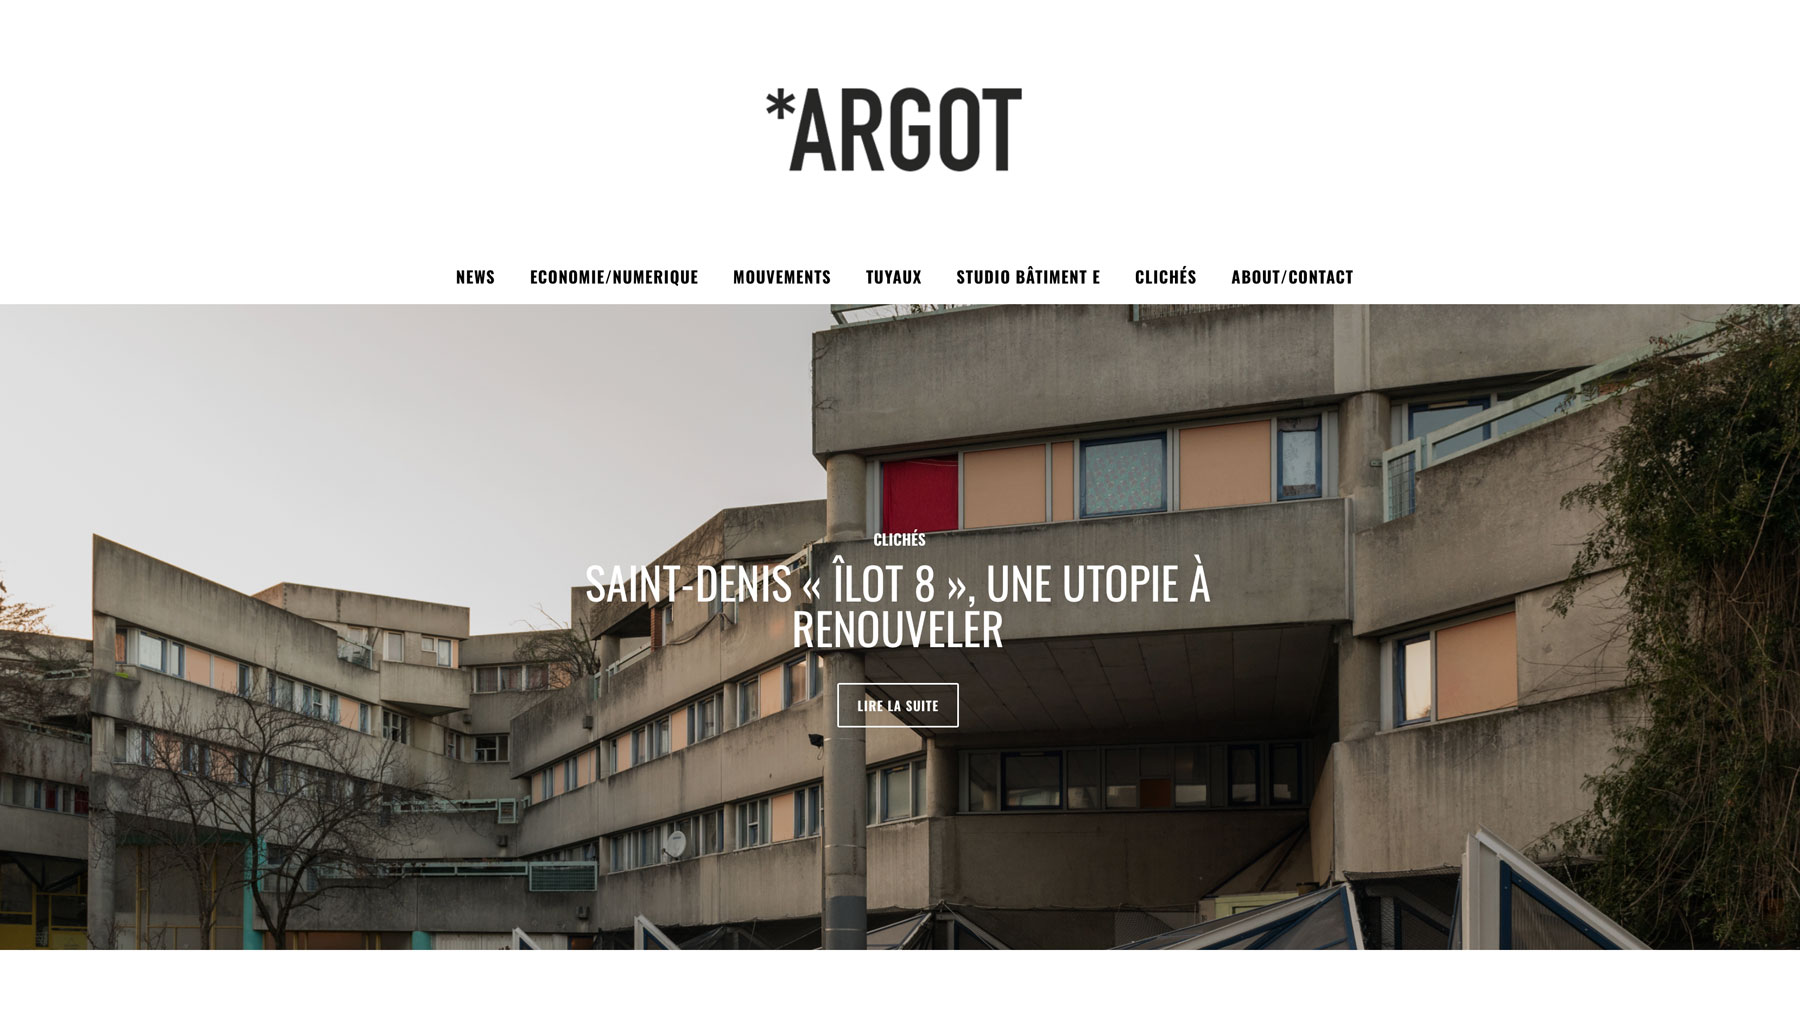 Tearsheet from Argot magazine